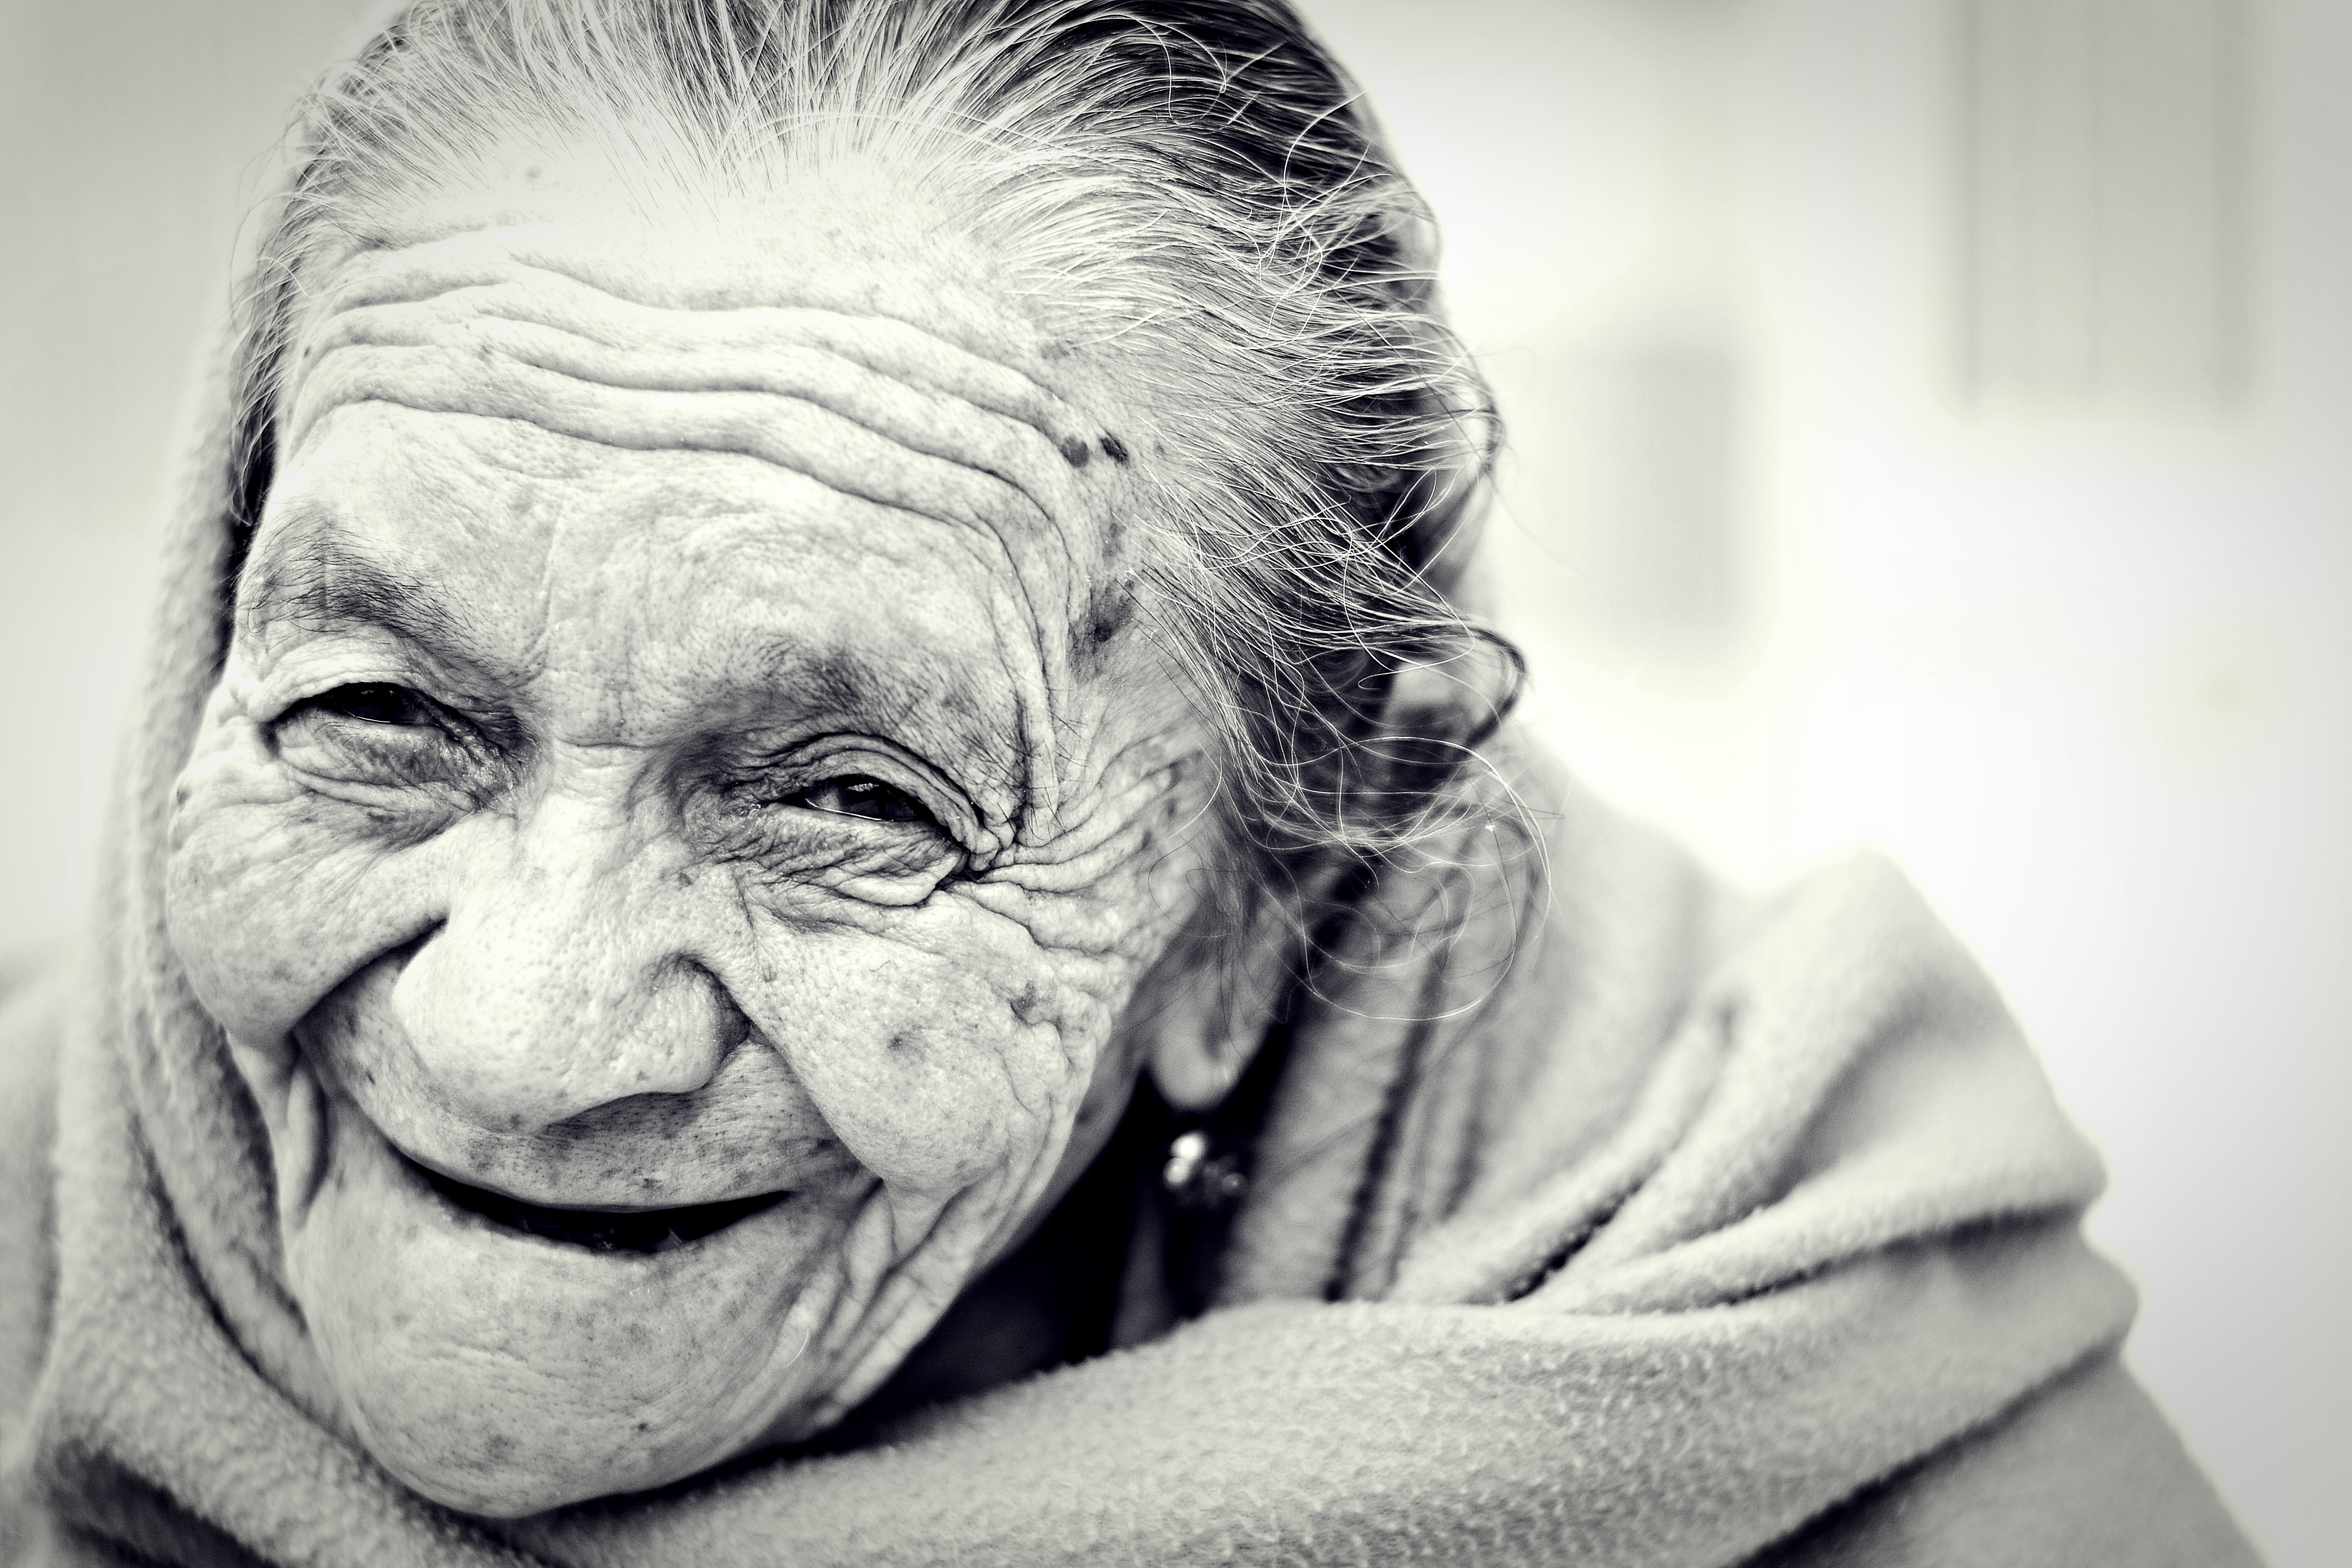 Elderly woman with care worn face laughs in black and white photo